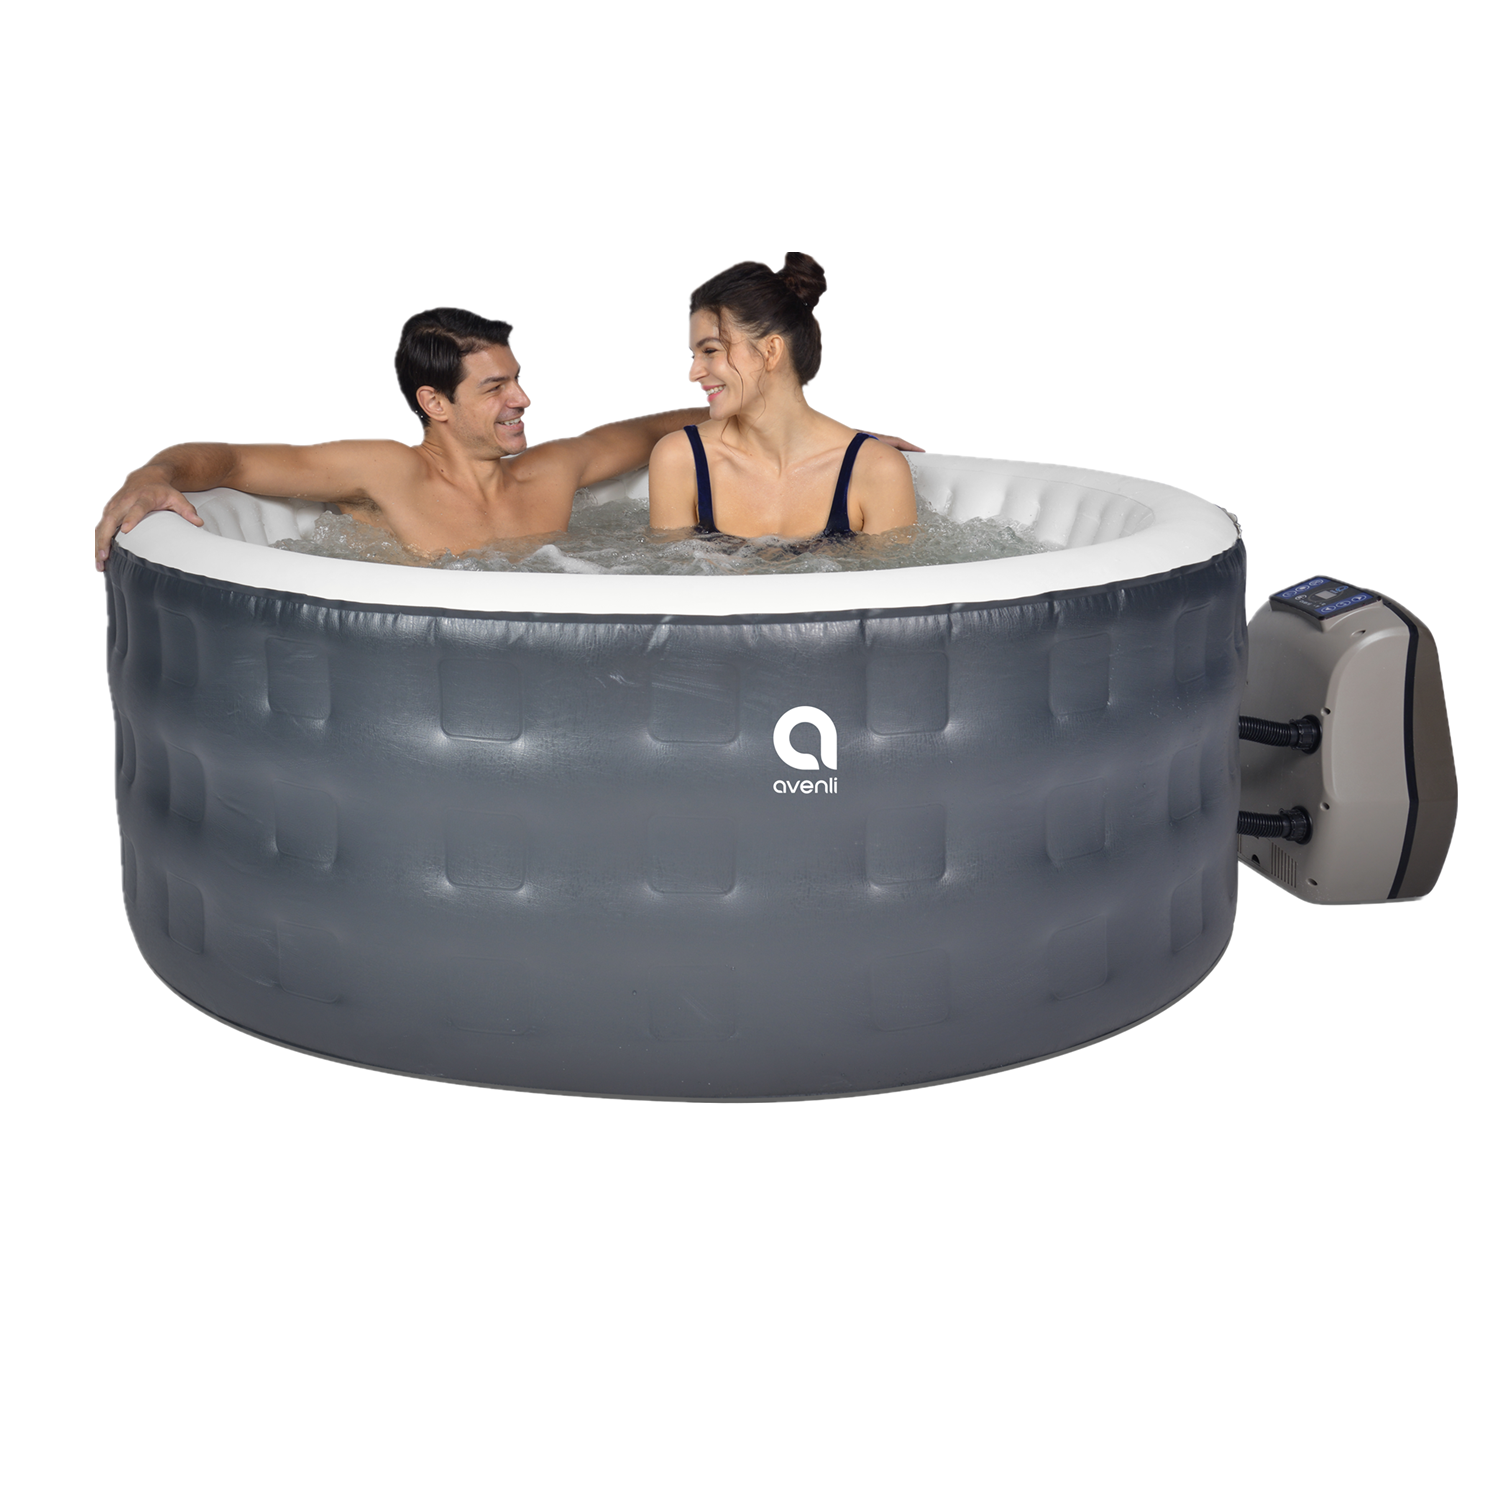 Avenli Spa bestway similar outdoor and indoor Hot Spa tubs 3 person inflatable spa tub for 2-4 person